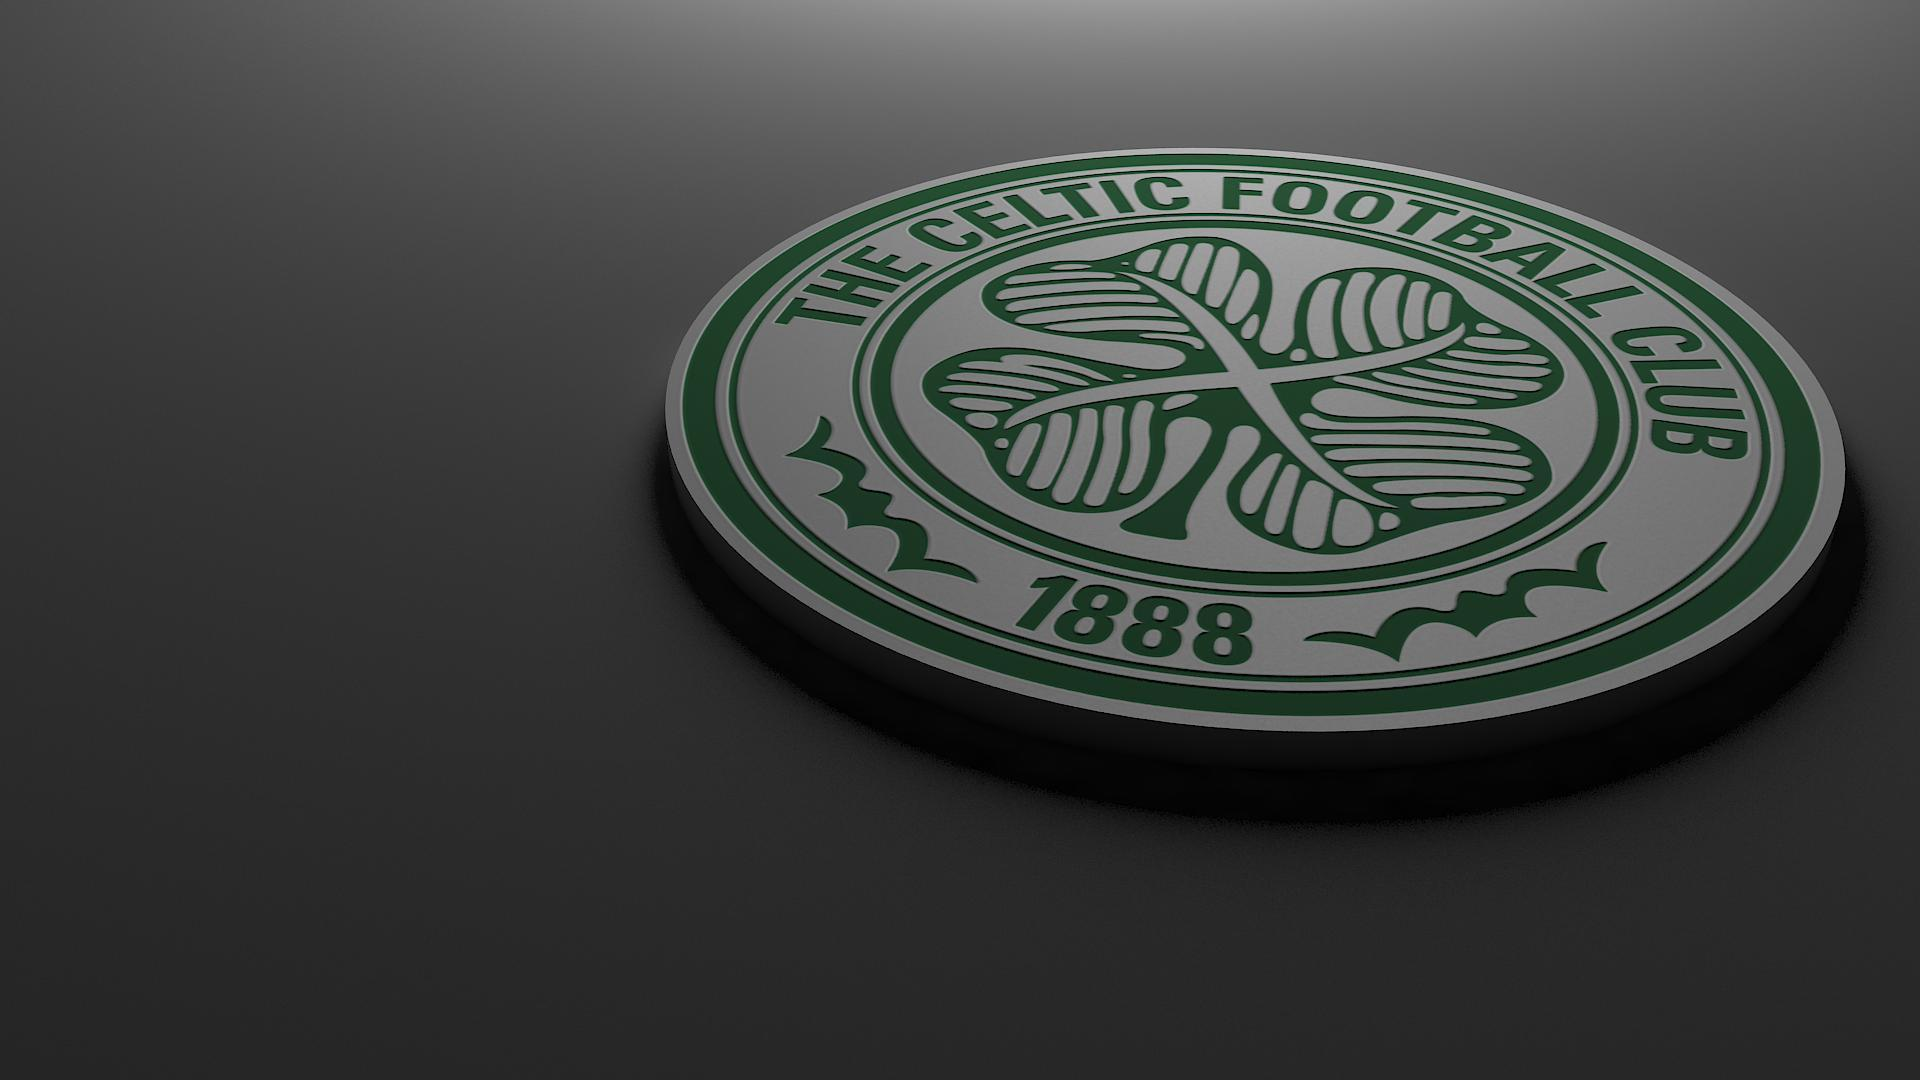 Celtic Fc Wallpapers Top Free Celtic Fc Backgrounds Wallpaperaccess